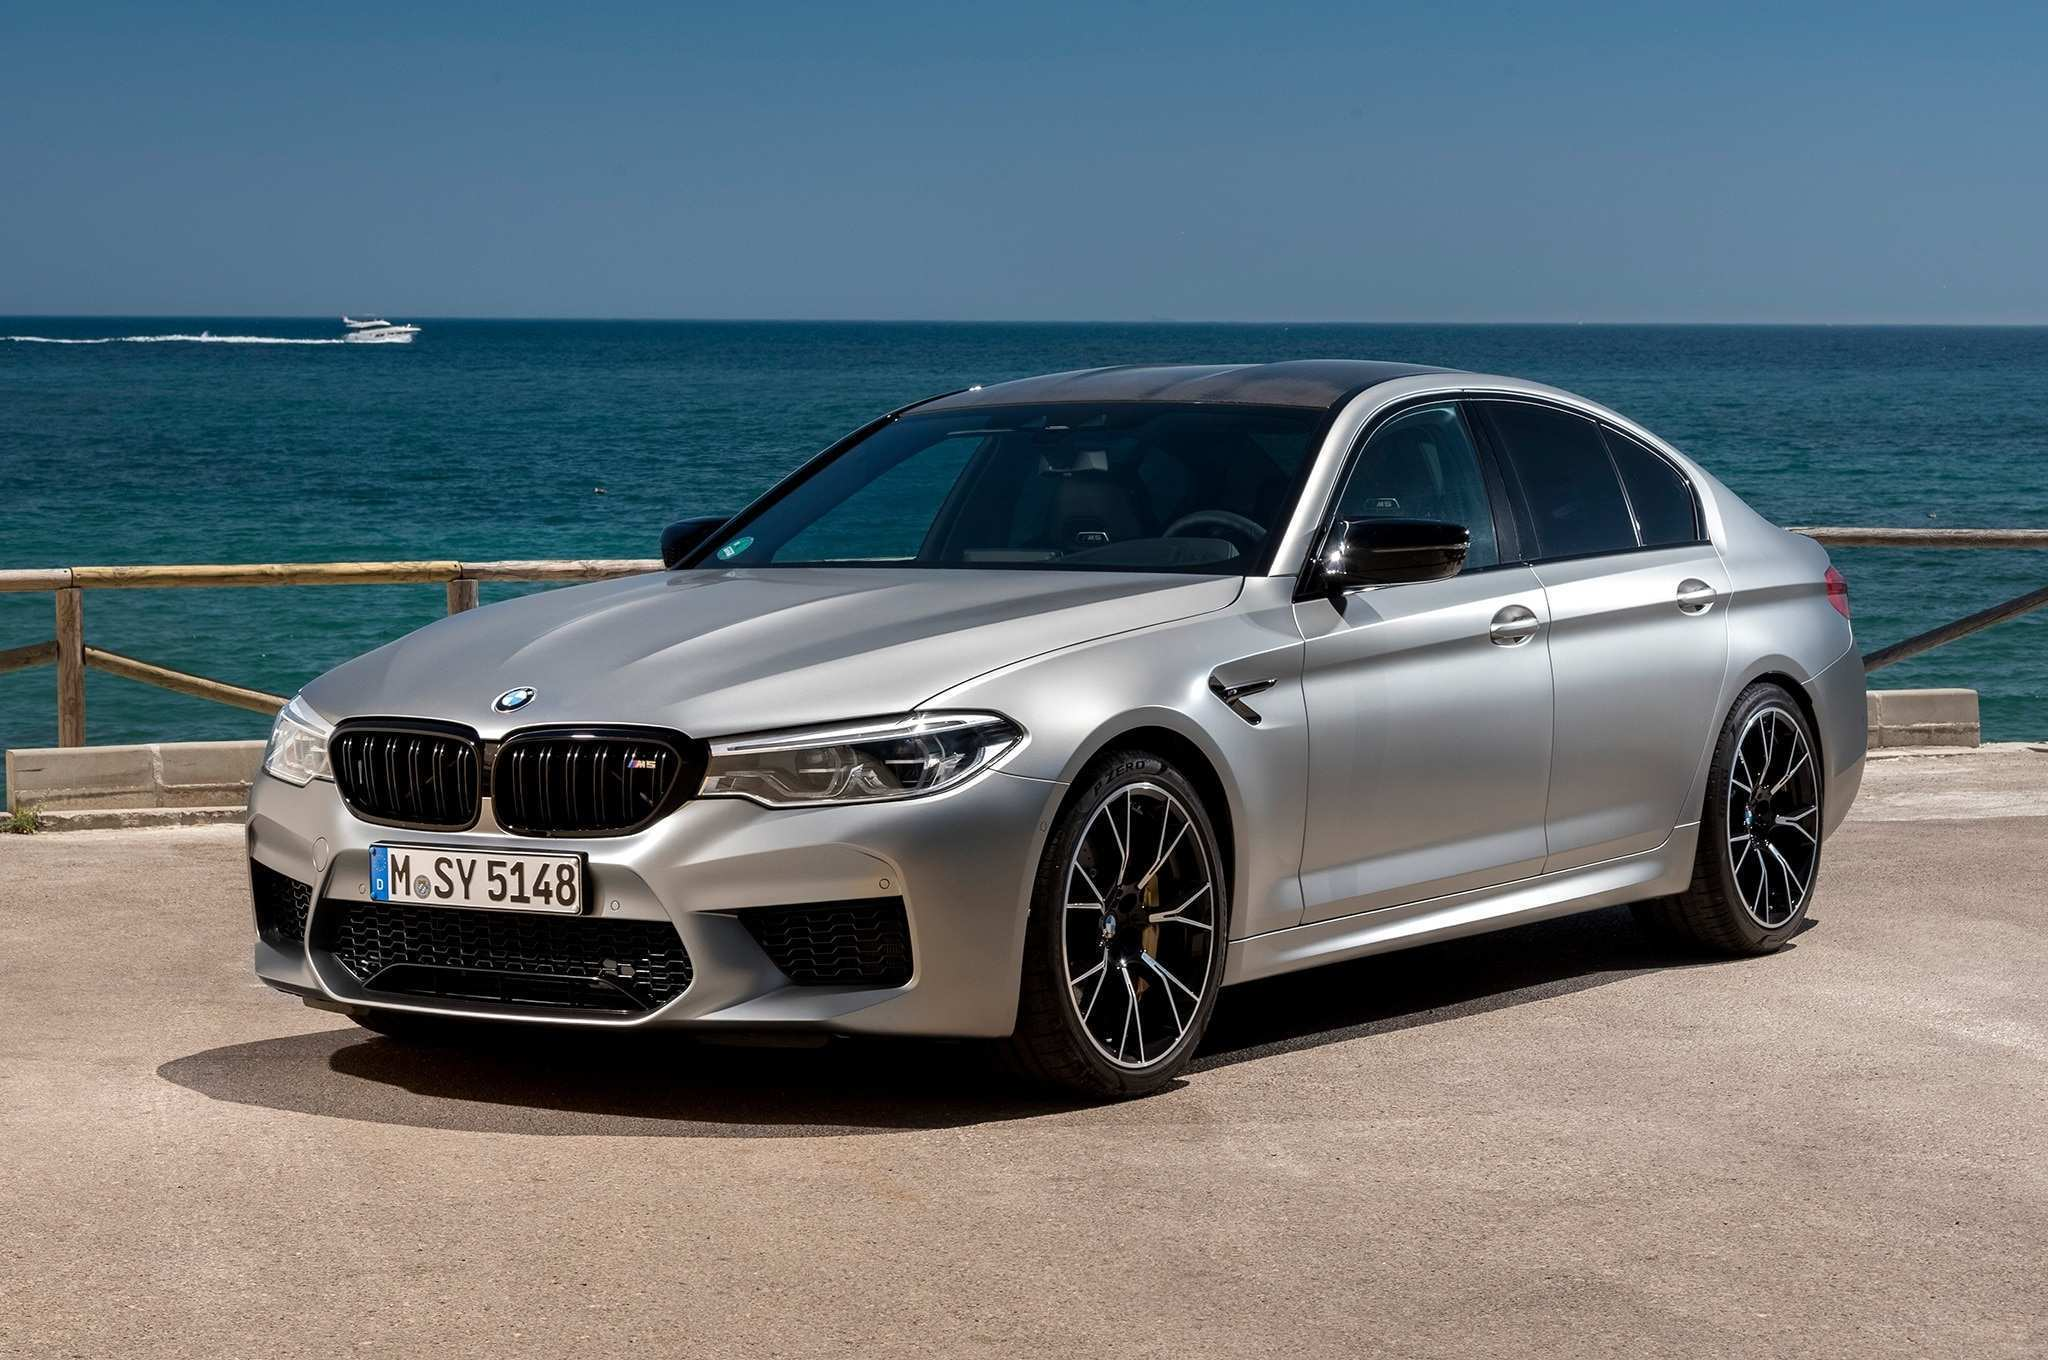 84 All New The Release Date Bmw 2019 First Drive Research New with The Release Date Bmw 2019 First Drive